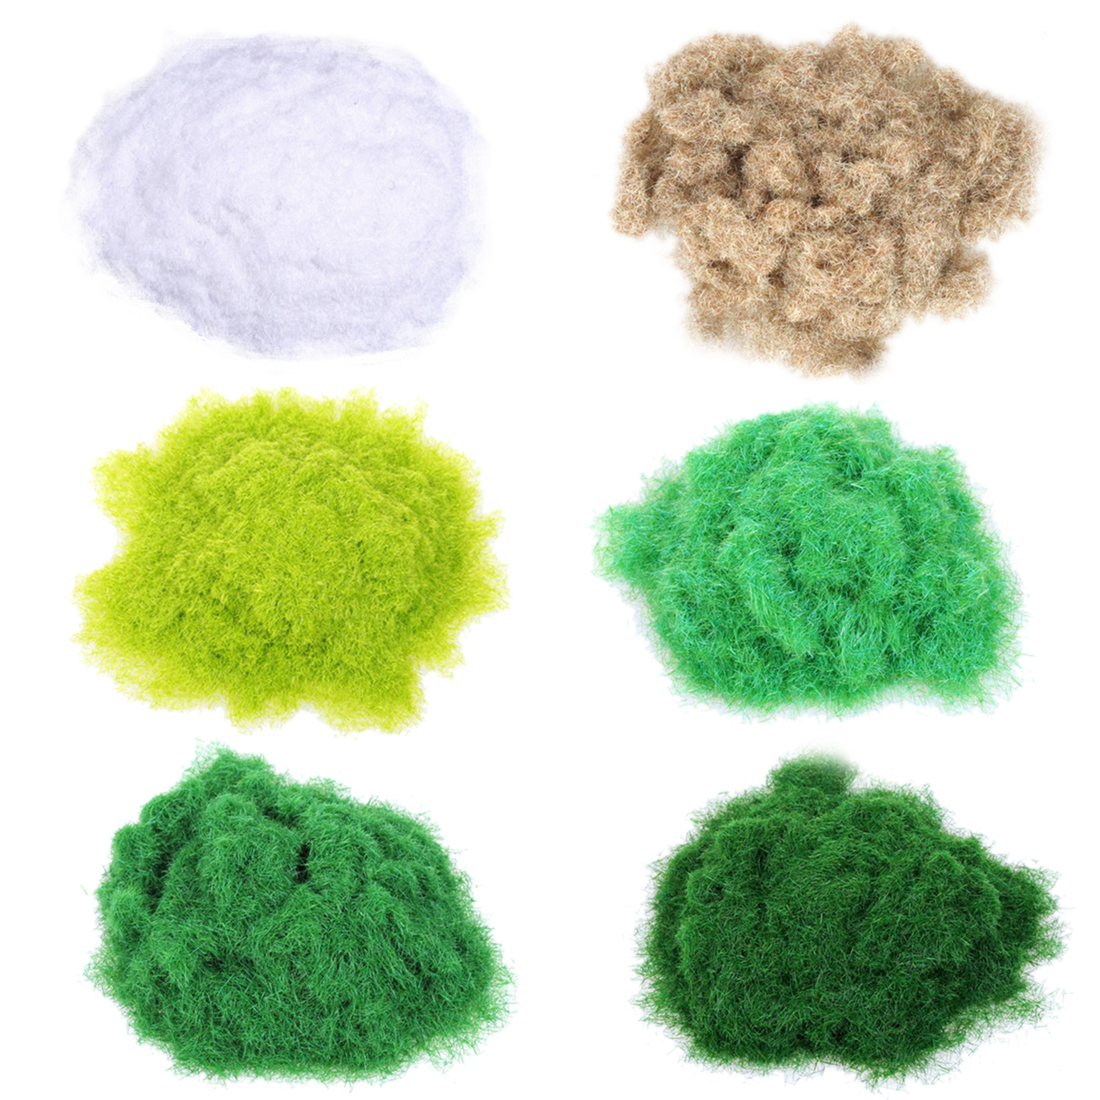 6pcs Artificial Grass Powder DIY Railway Model Sand Table Model Decor  Accessories Toys Hobbies For Kids - Mixed Color